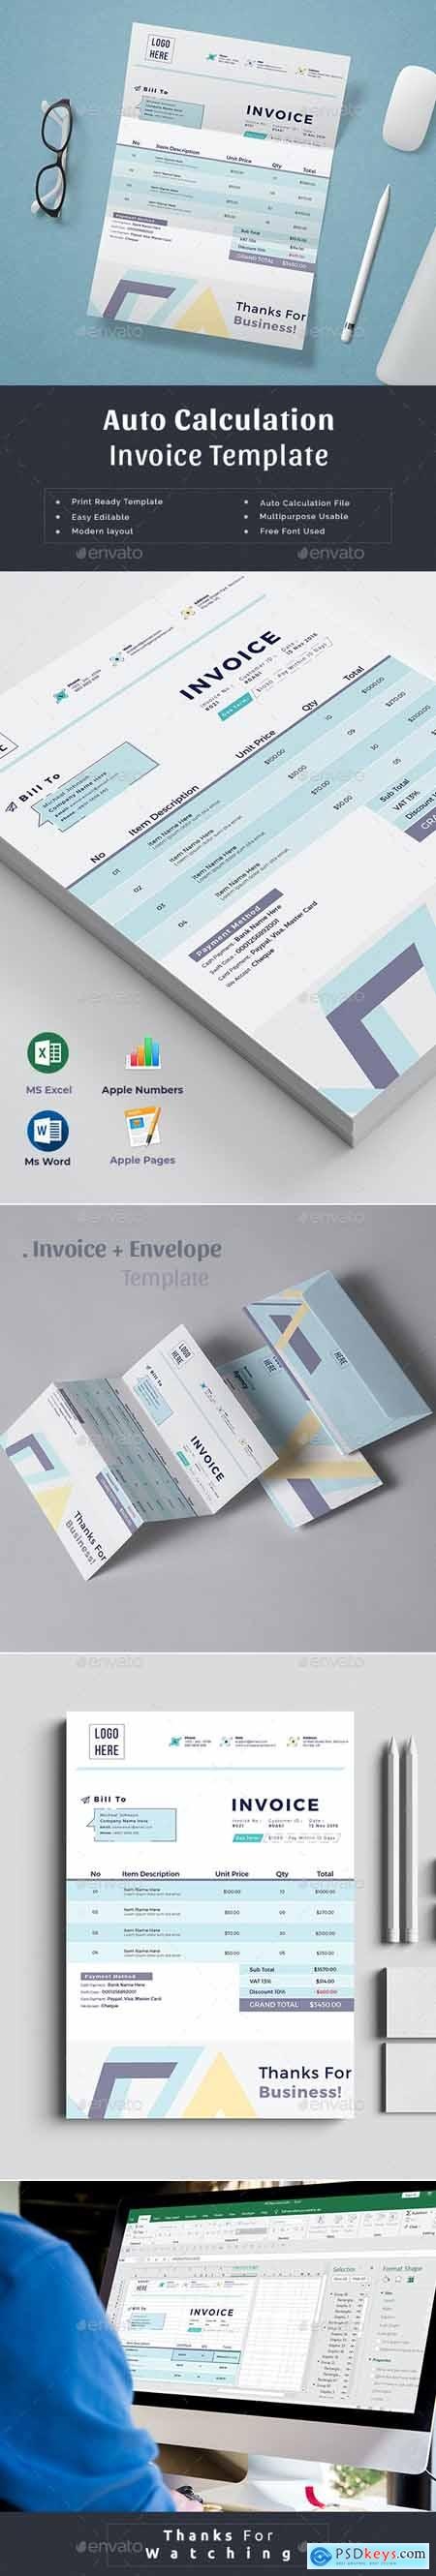 Invoice Excel Numbers 25697727